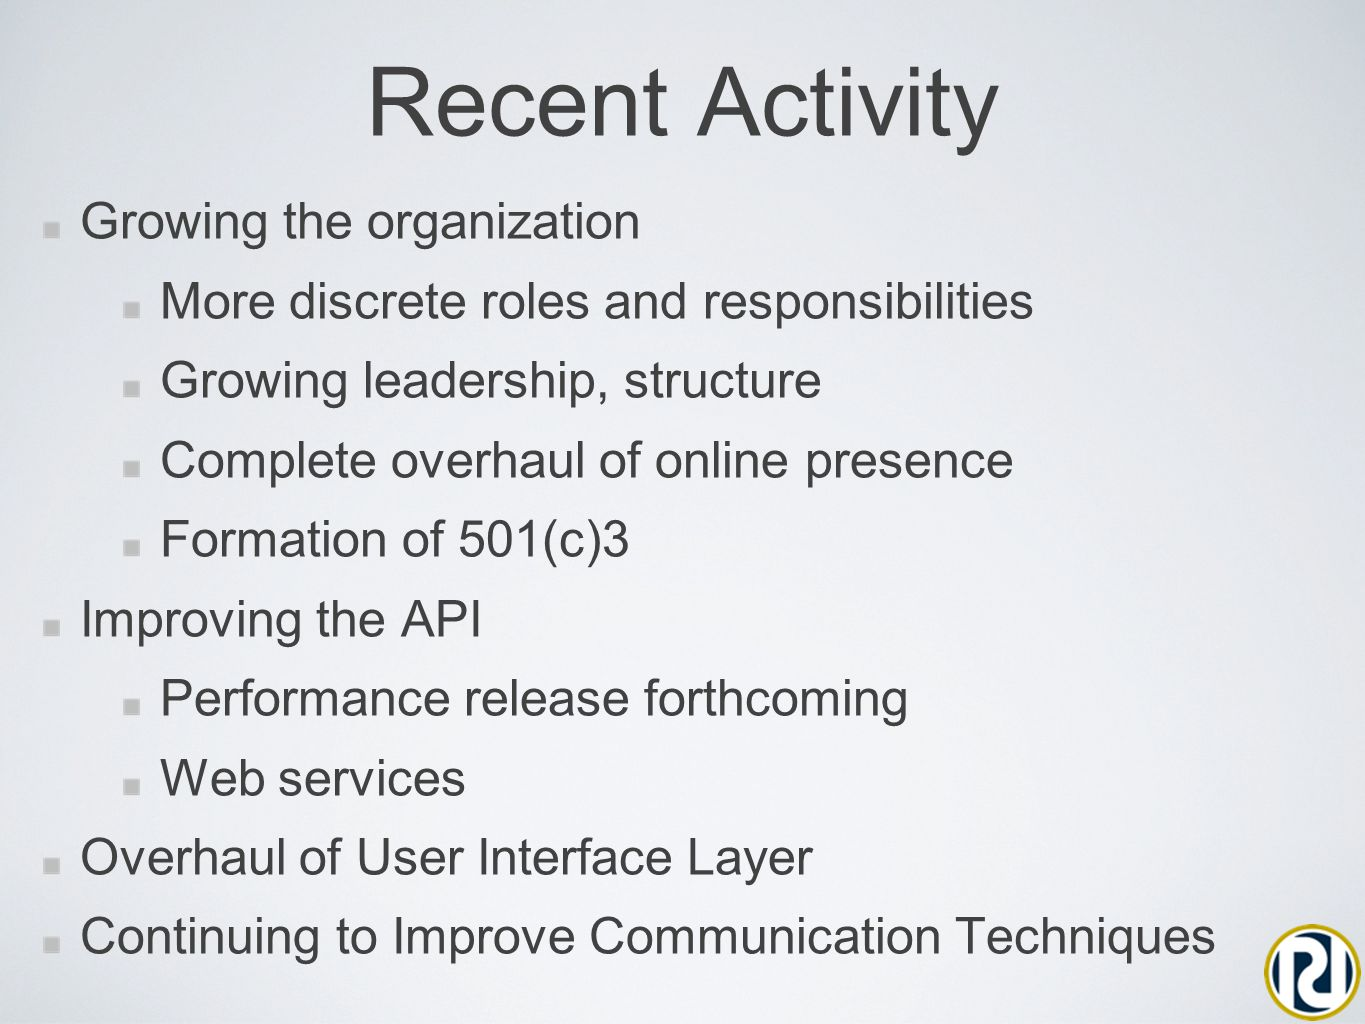 Recent Activity Growing the organization More discrete roles and responsibilities Growing leadership, structure Complete overhaul of online presence Formation of 501(c)3 Improving the API Performance release forthcoming Web services Overhaul of User Interface Layer Continuing to Improve Communication Techniques